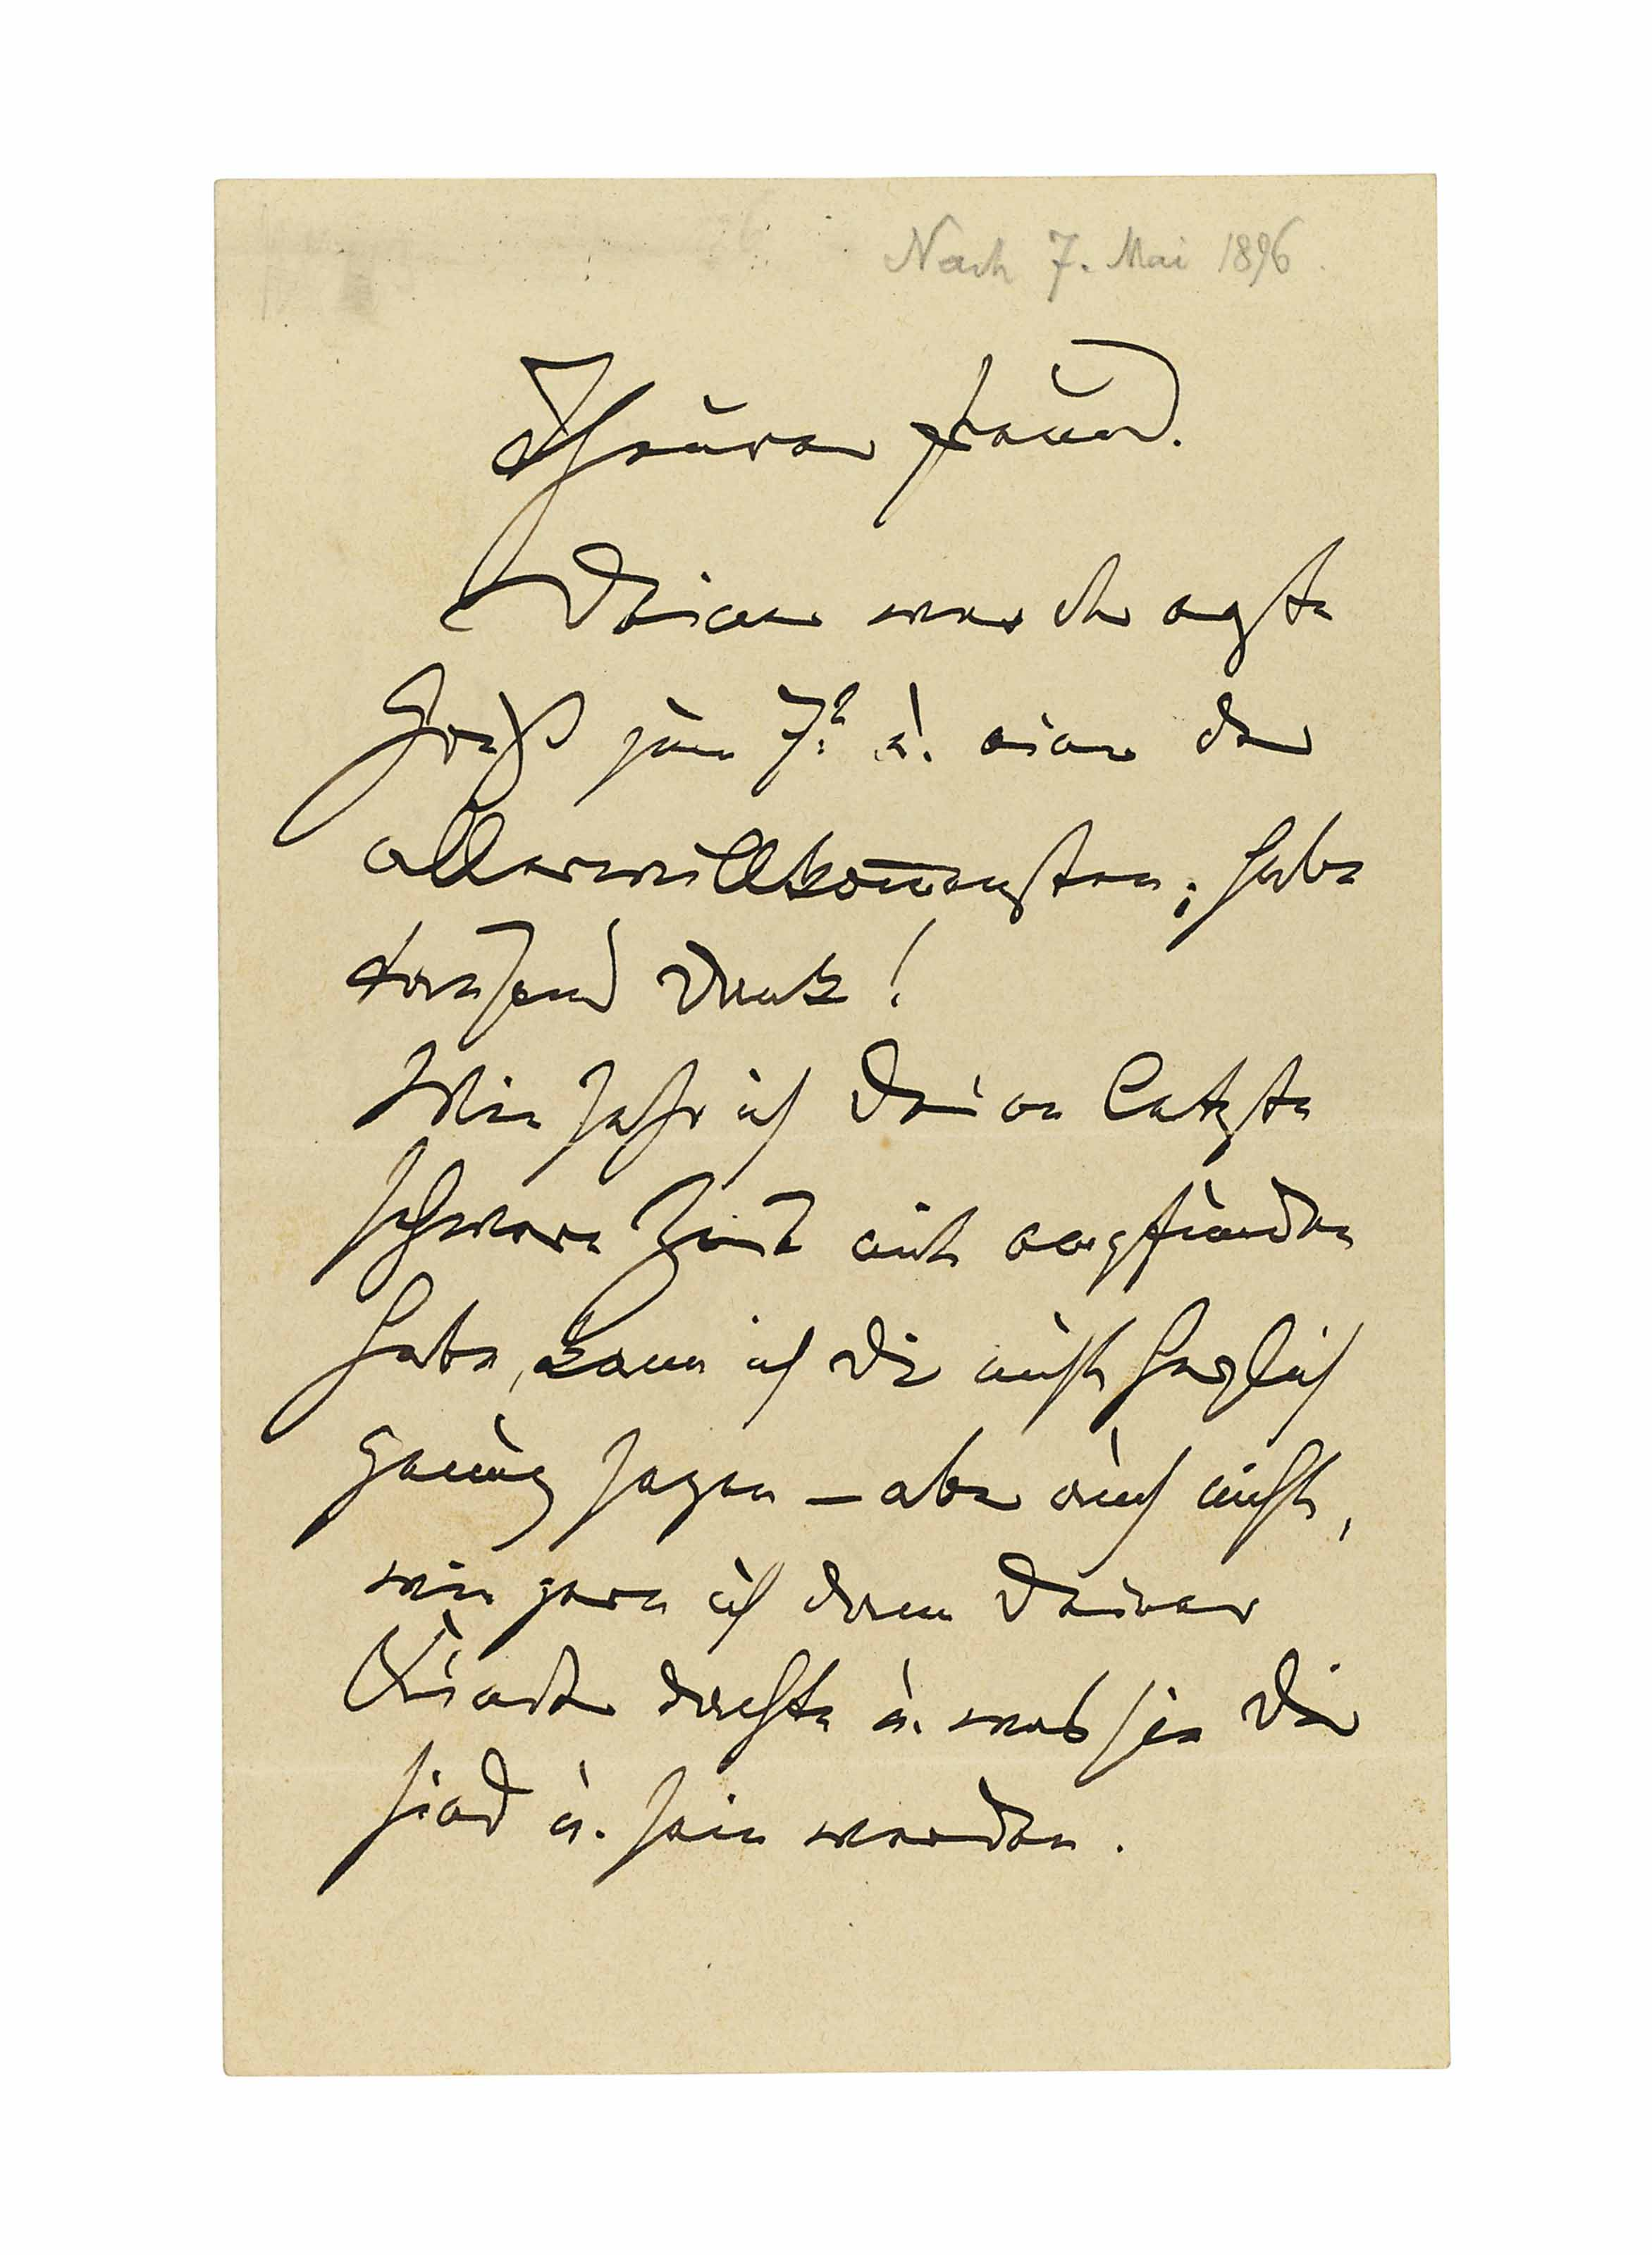 BRAHMS, Johannes (1833-1897). Autograph letter signed ('Dein / Johannes') to an unidentified recipient ('Theurer Freund'), n.p., n.d. [dated in pencil 'Nach 7. Mai 1896'], 2½ pages, 8vo, bifolium.